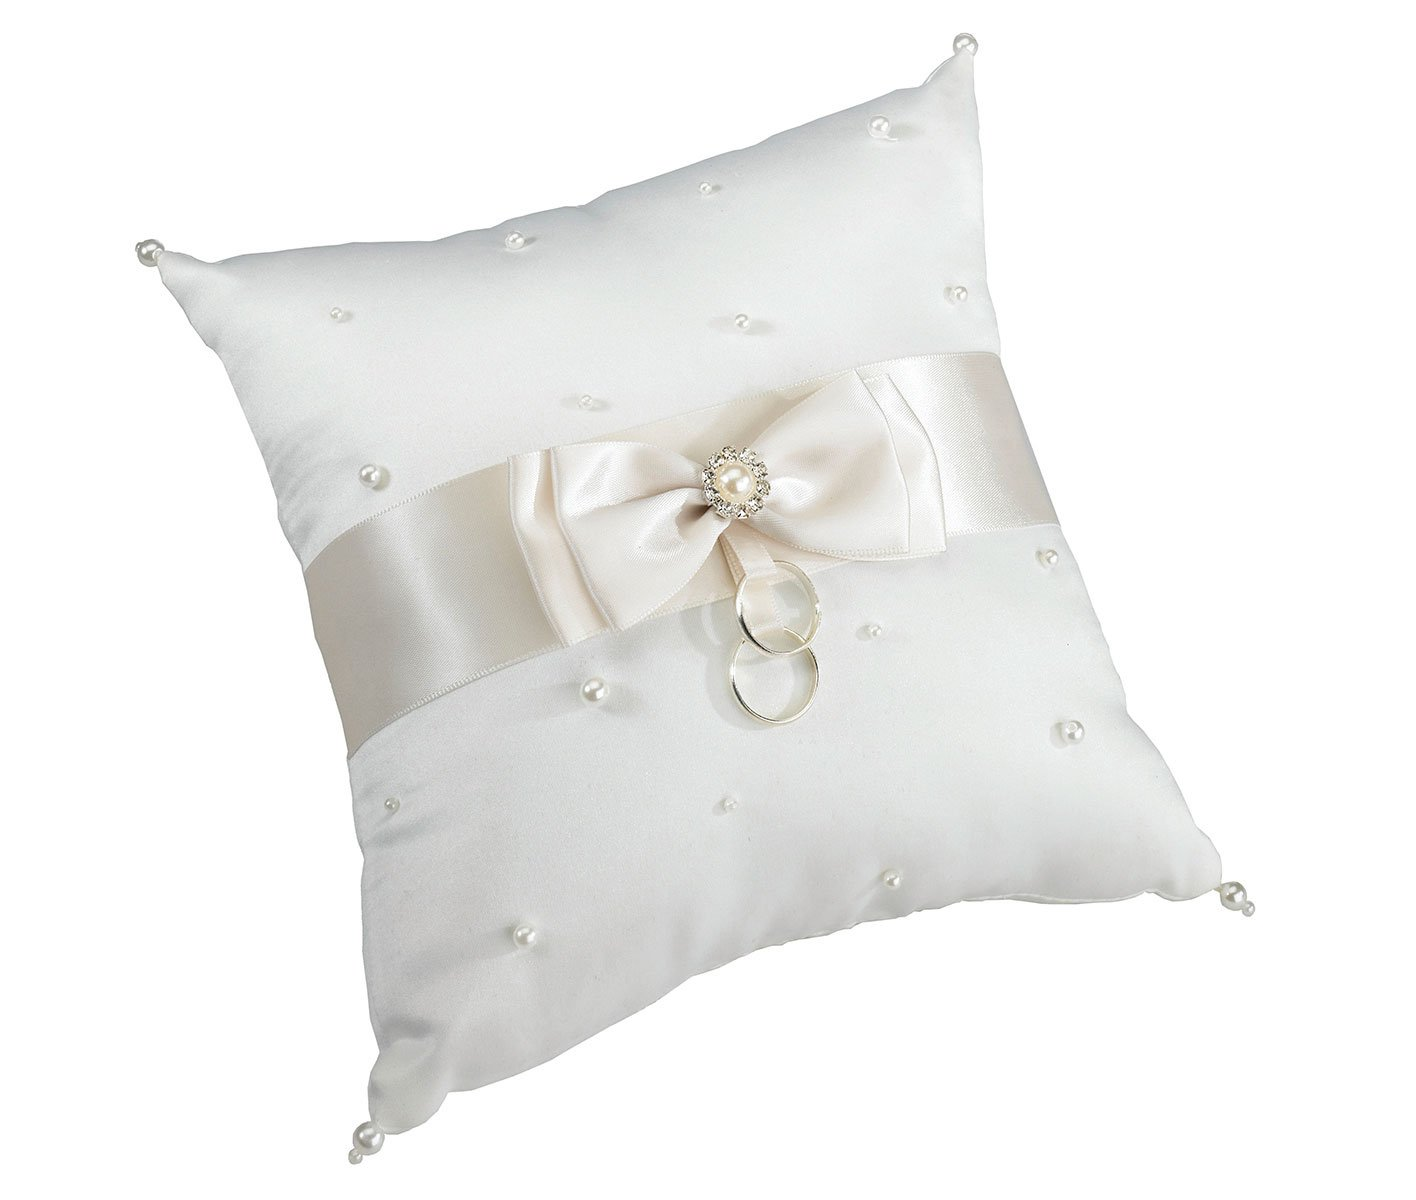 Lillian Rose Classic Ivory Satin Pearl Wedding Ring Pillow by Lillian Rose